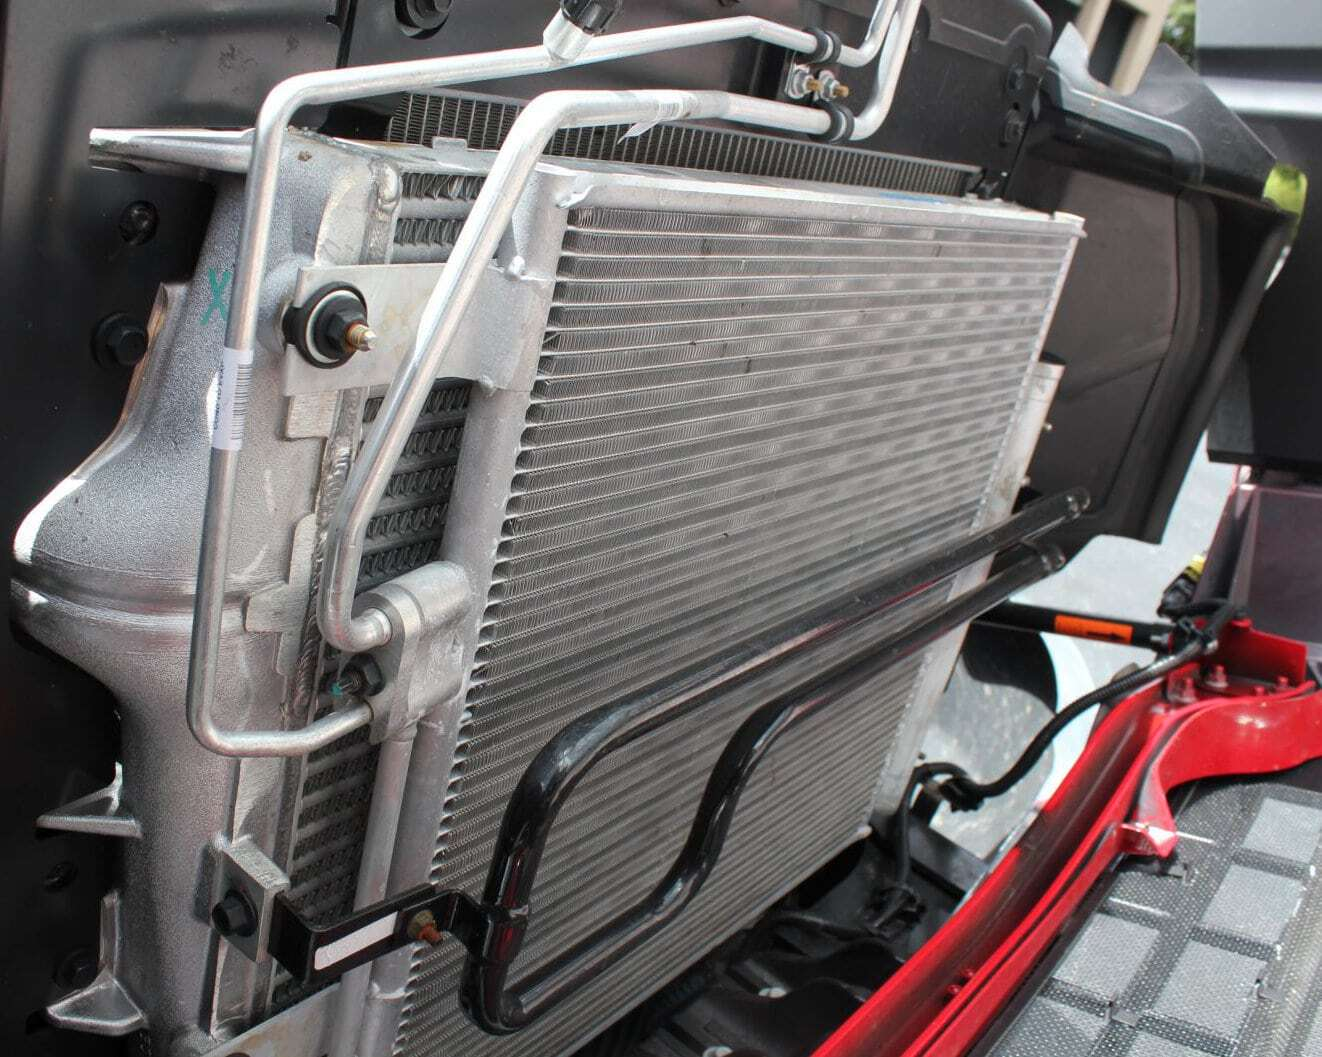 (Sample) Open View of the radiator.